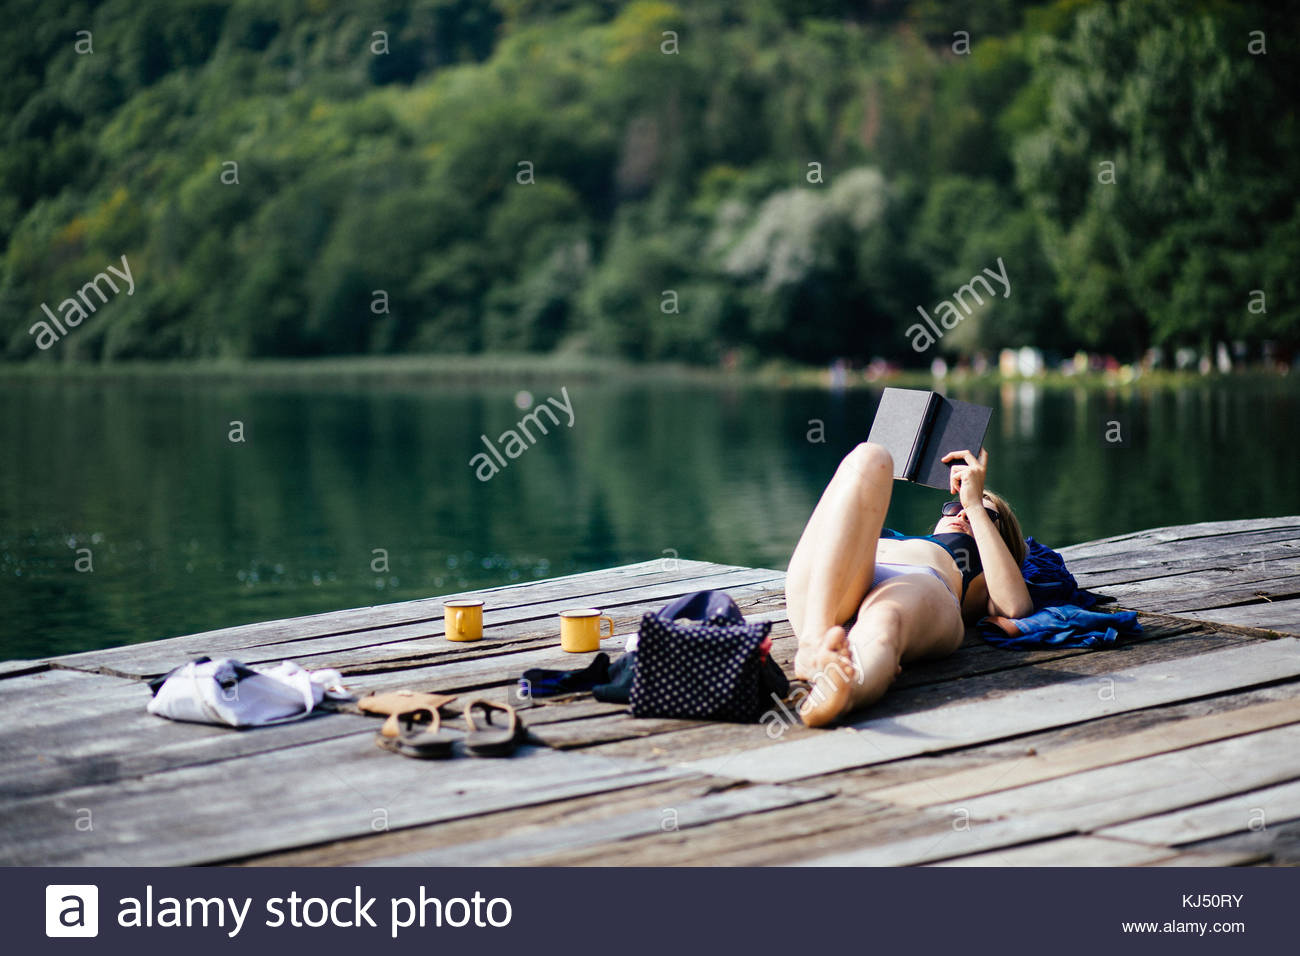 Young woman in bikini laying reading a book on a wooden pier - Stock Image